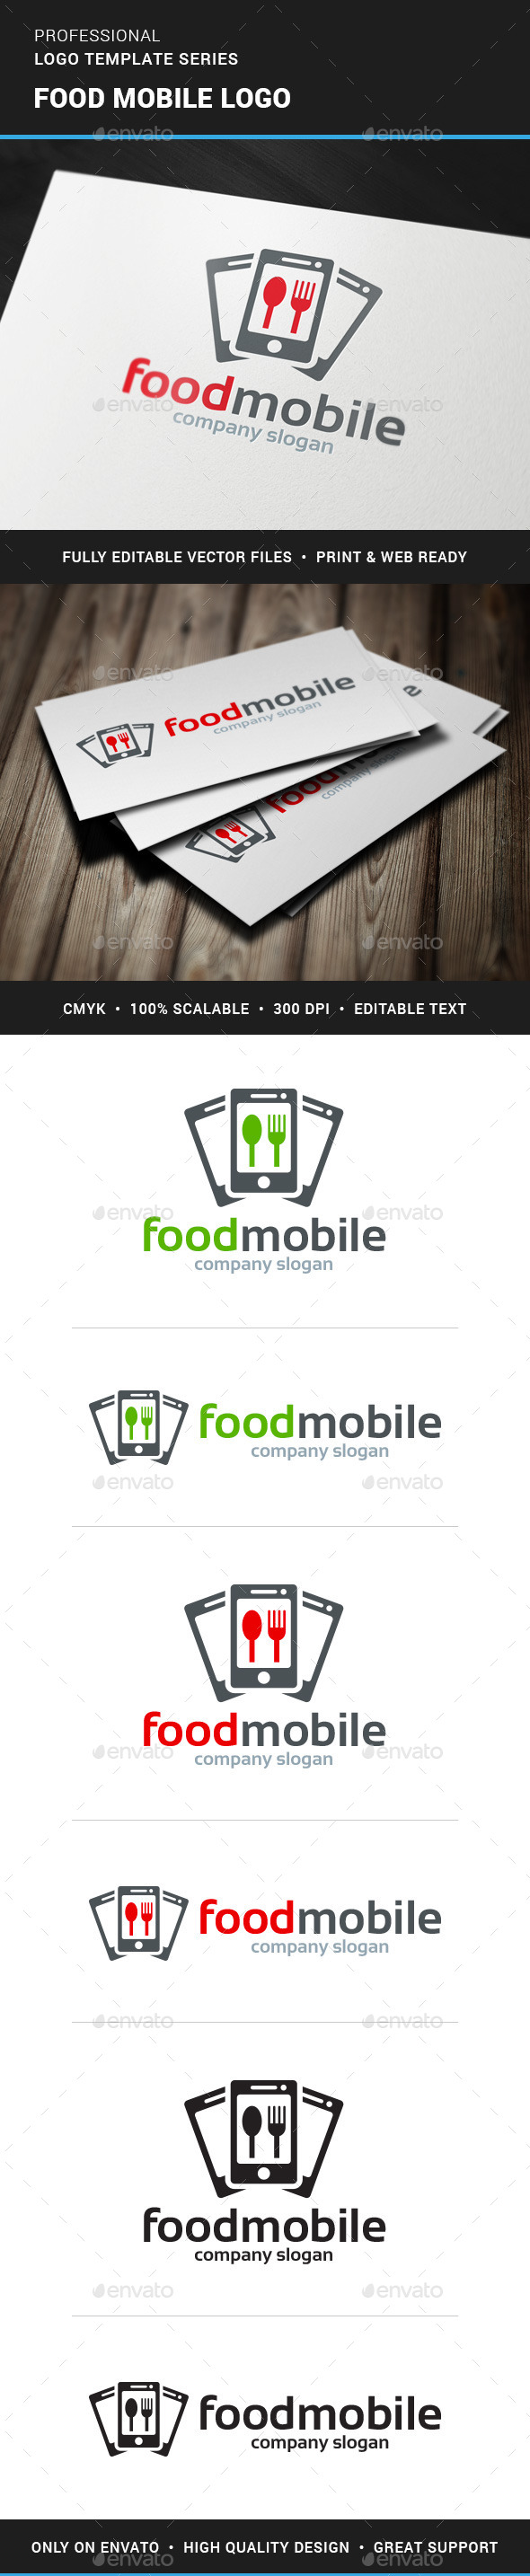 Food Mobile Logo Template